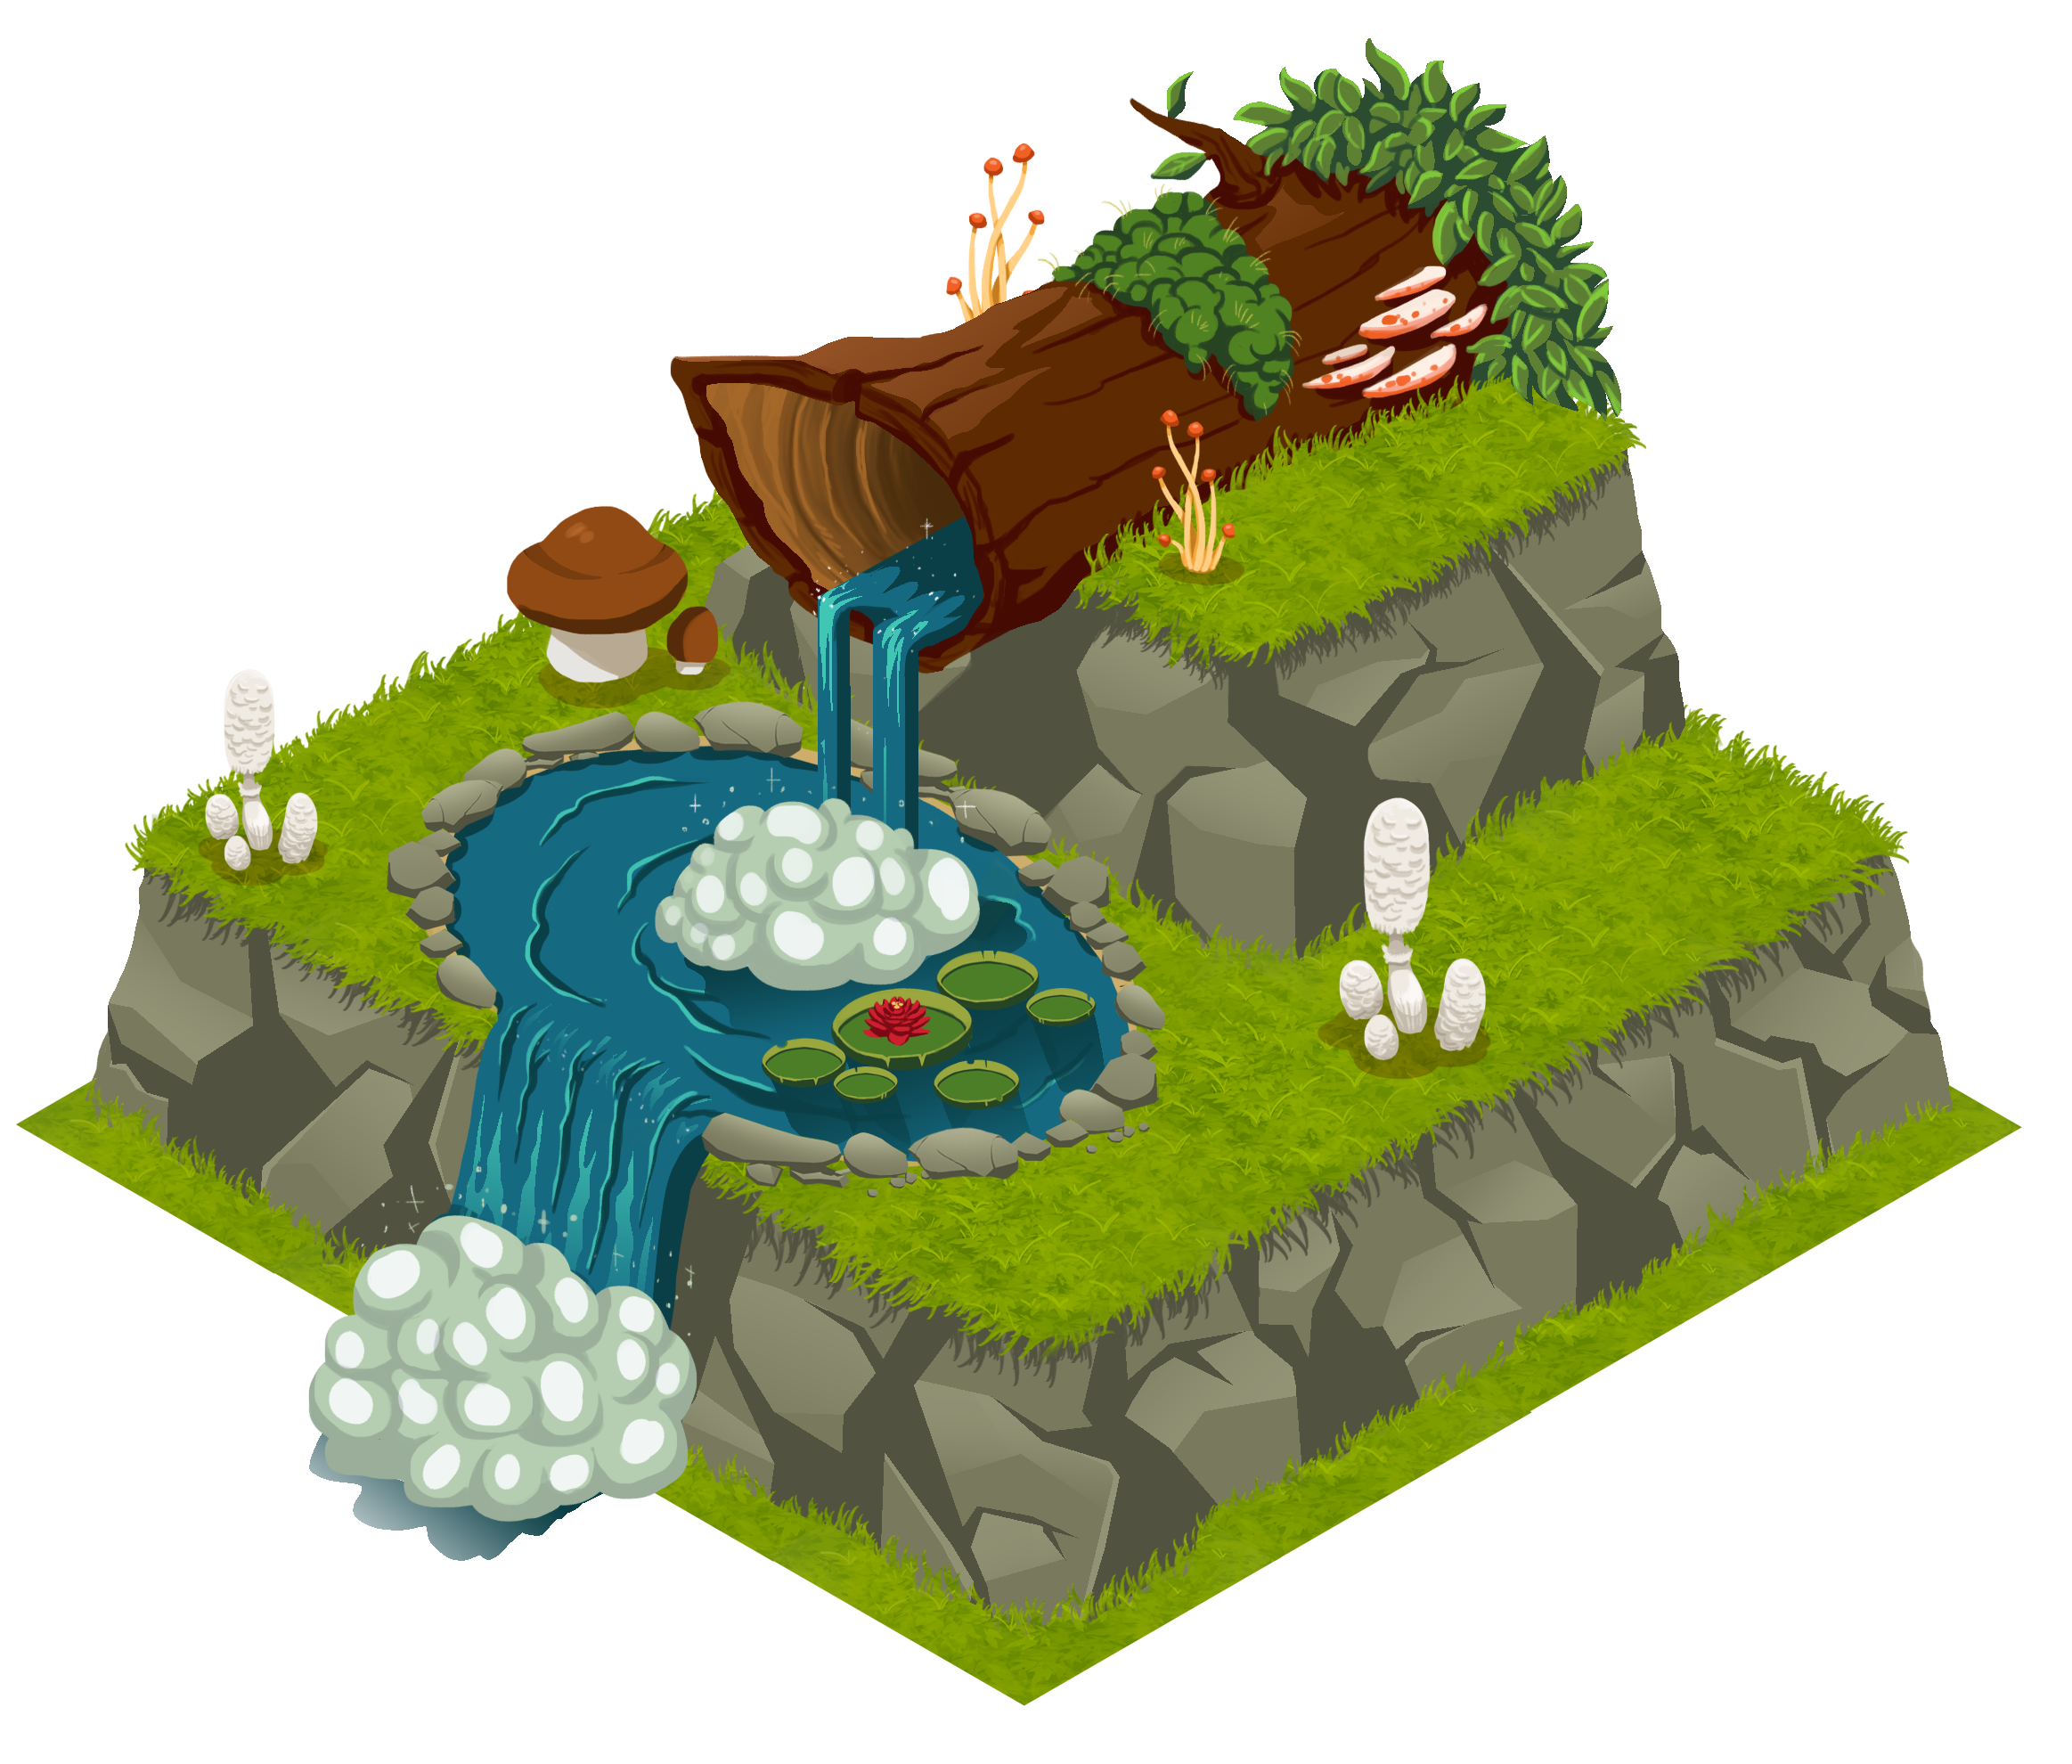 Finished asset   Waterfall with mushrooms